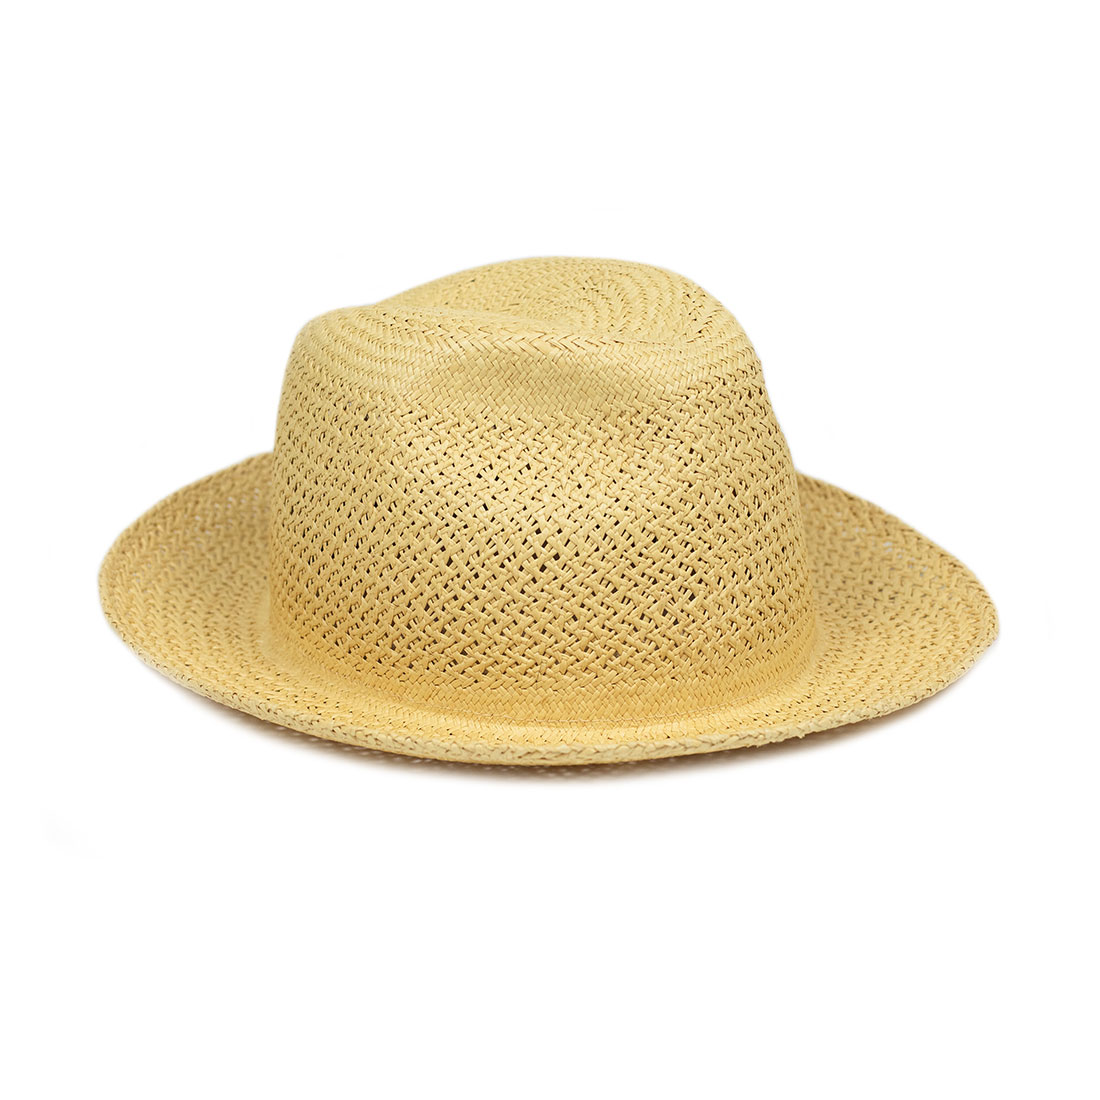 Sublime Hats Made in Japan Spring Summer 2021 SS21 PanamaHat Straw Hat  (4).jpg